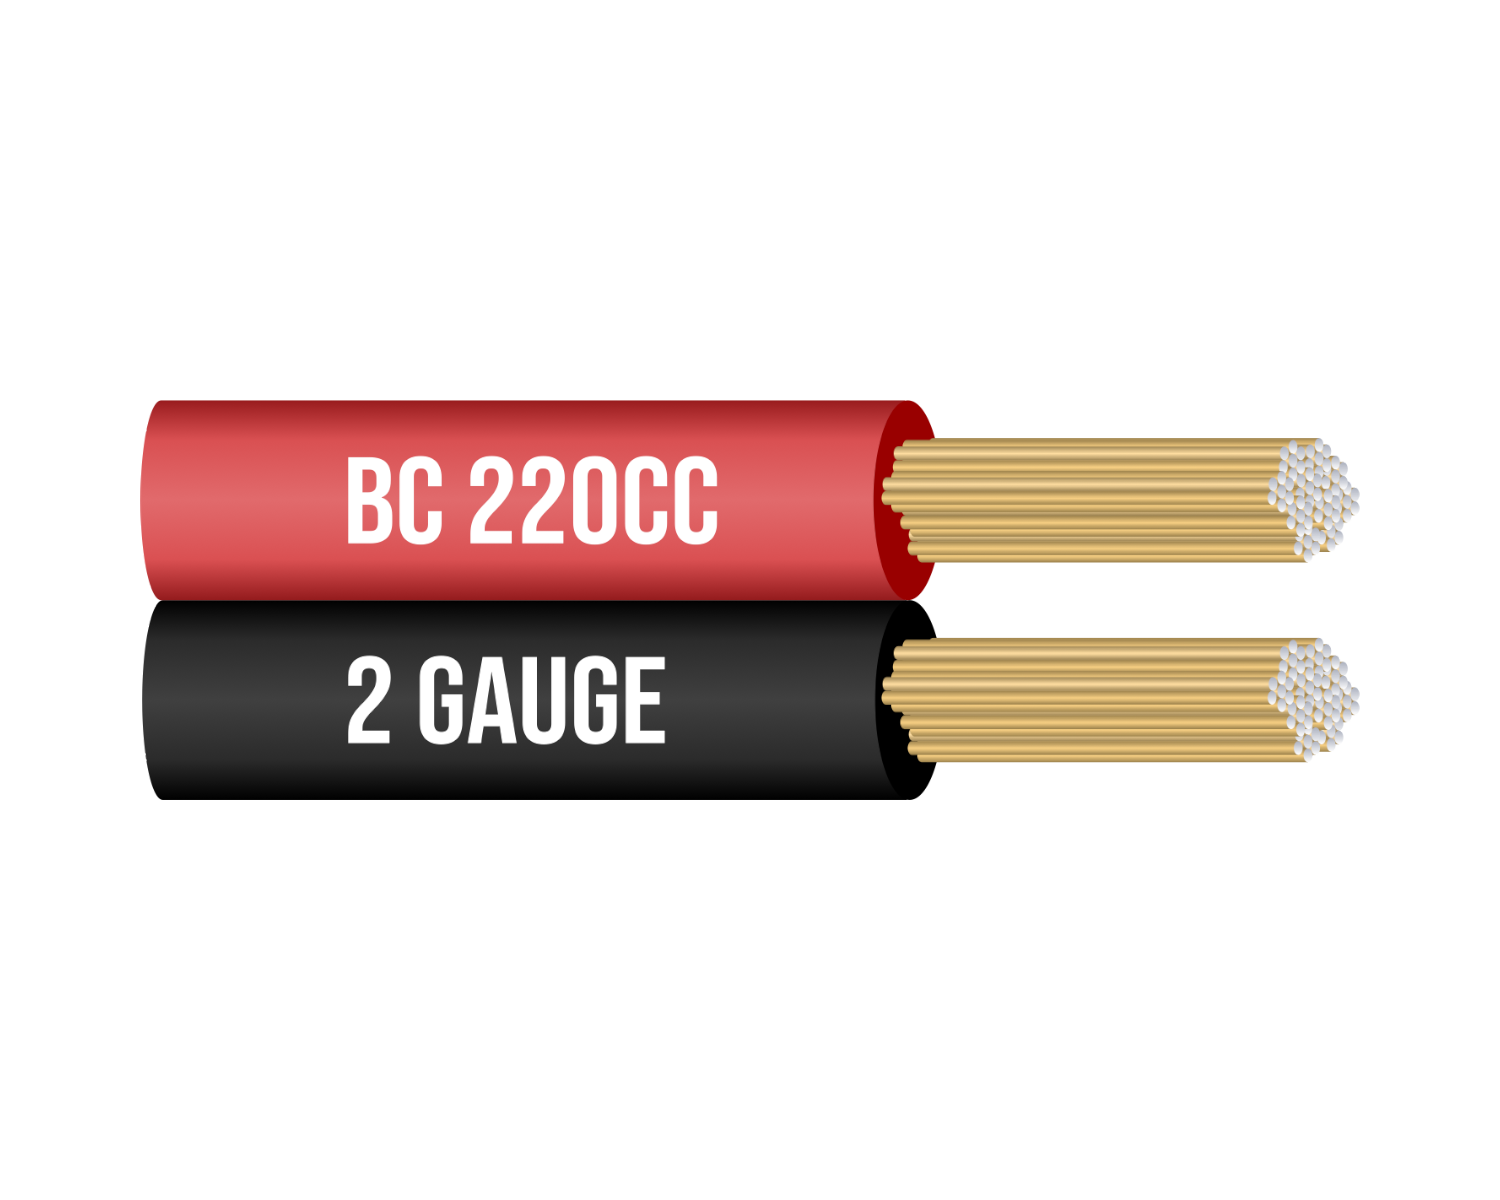 2 Gauge Copper Clad Jumper Cables